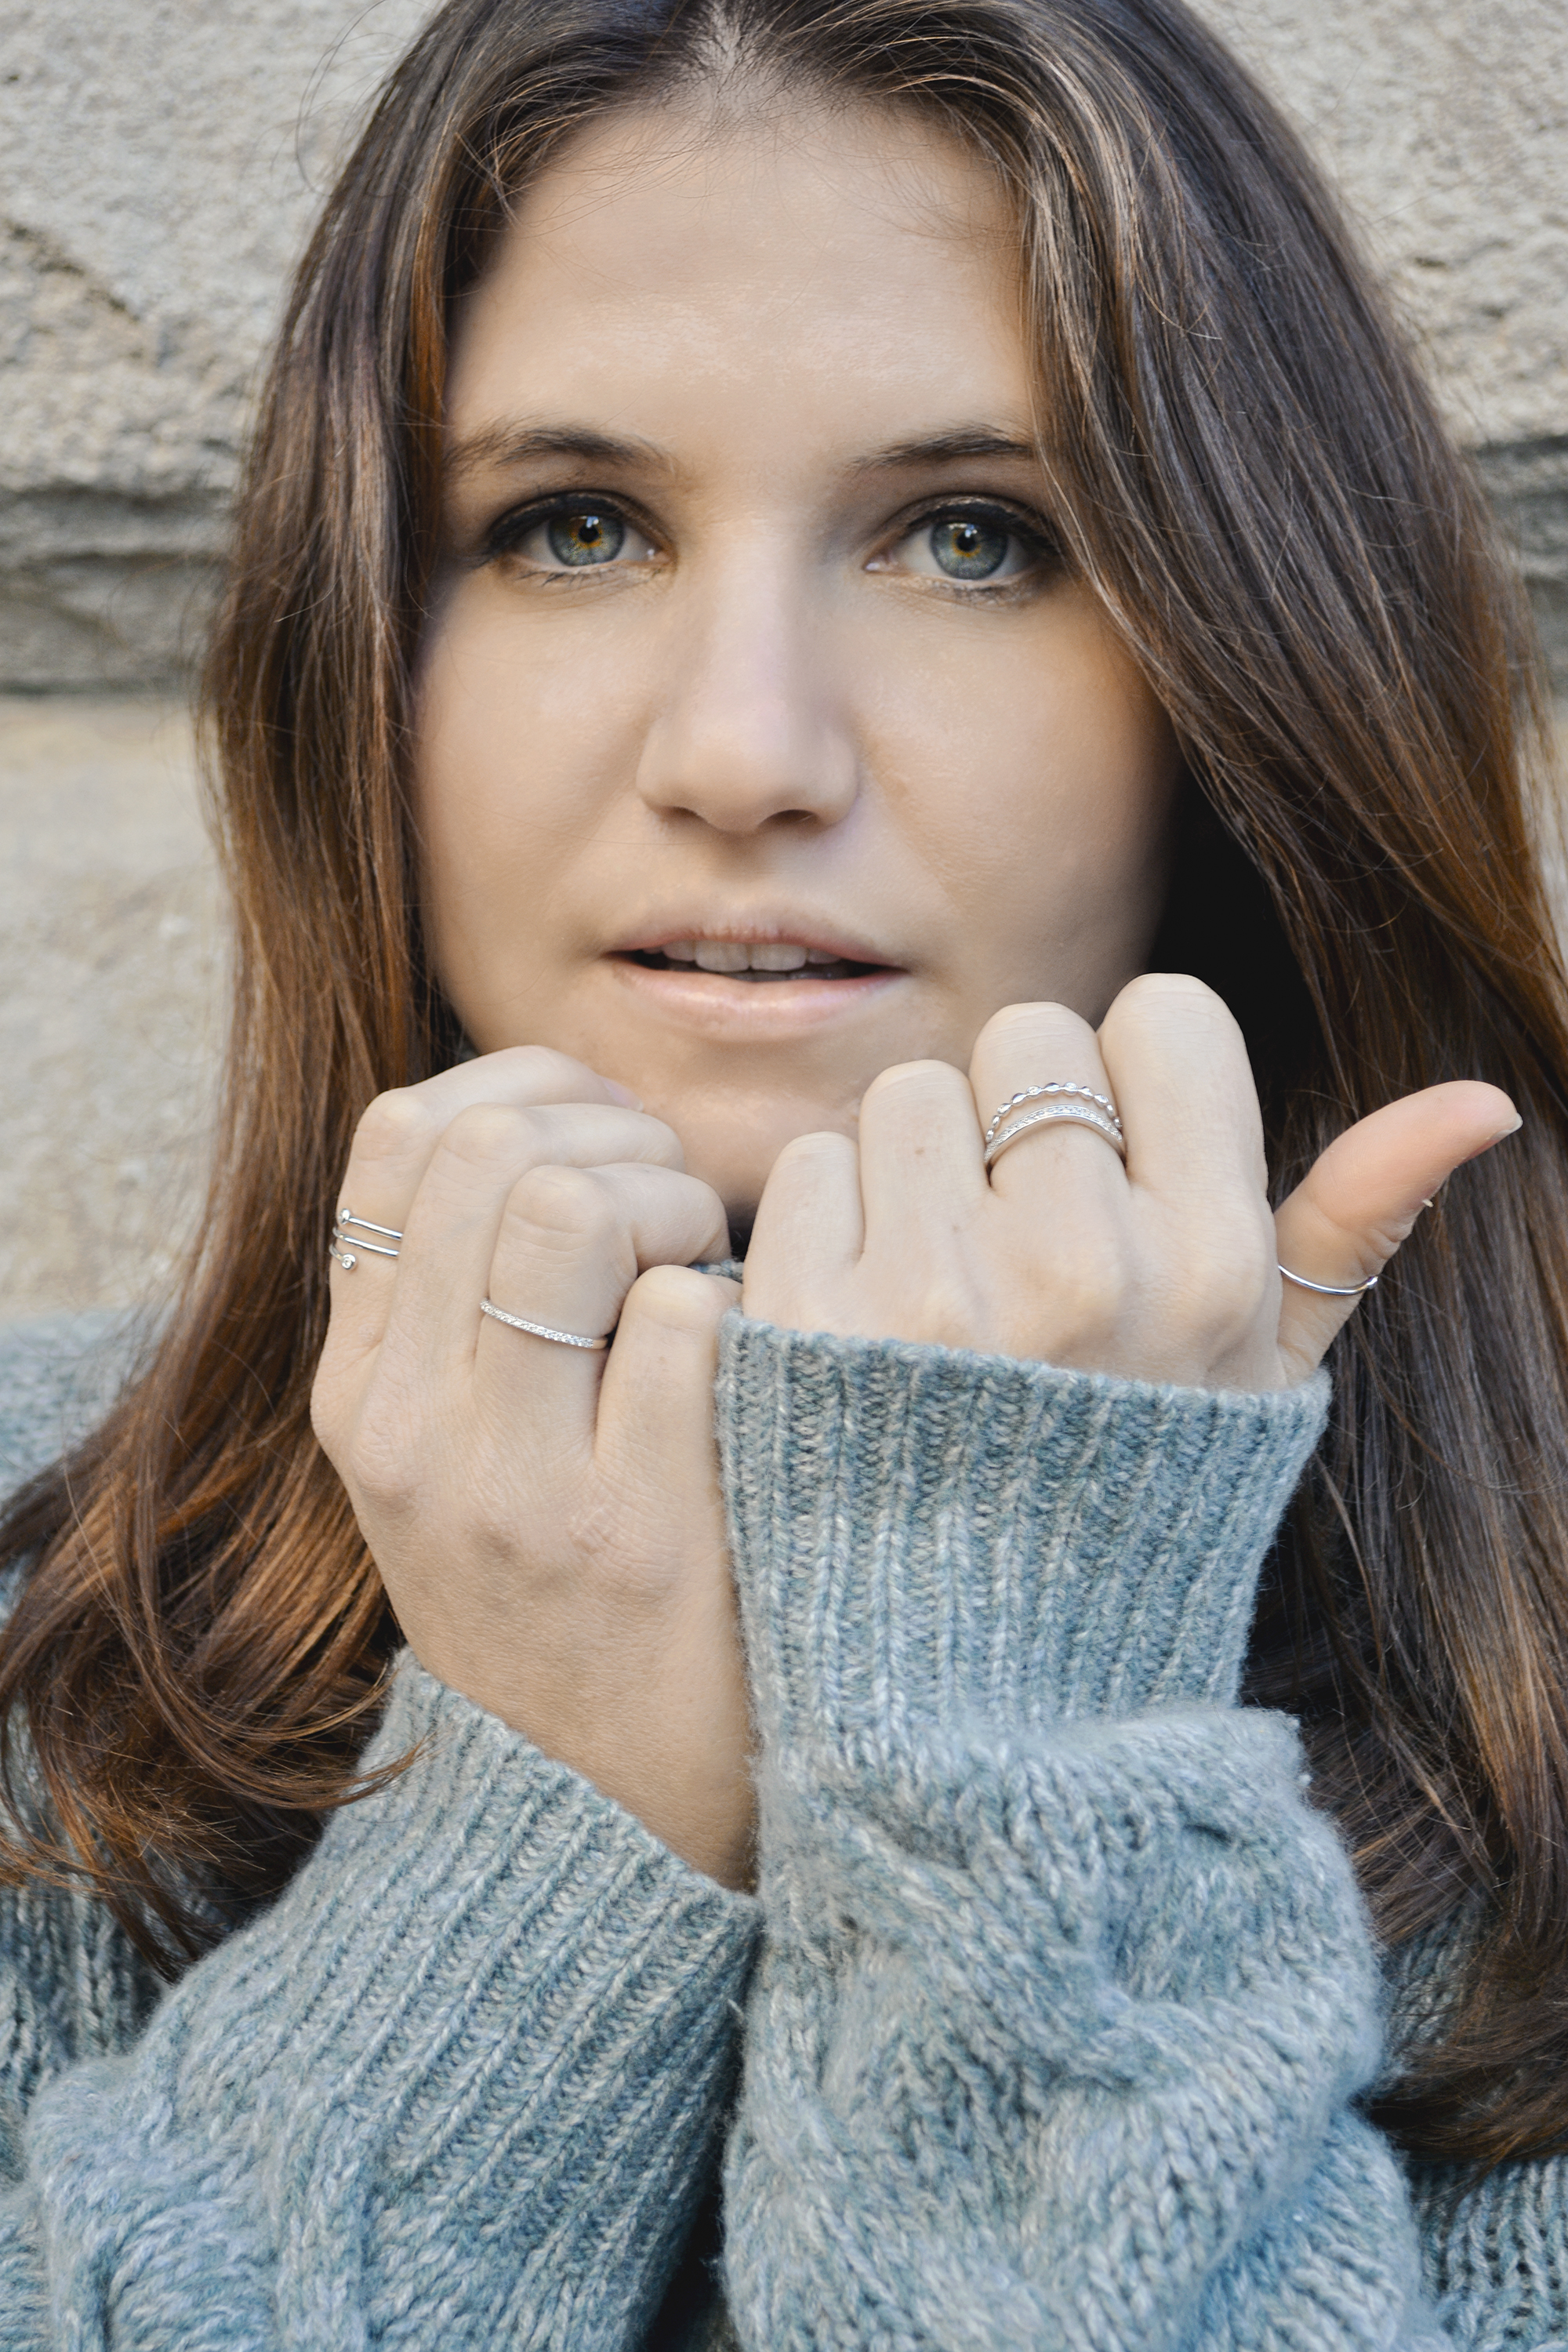 Jewelry designed by  Erth  featured in the Ace-Picked Fall Fashion Photo Shoot